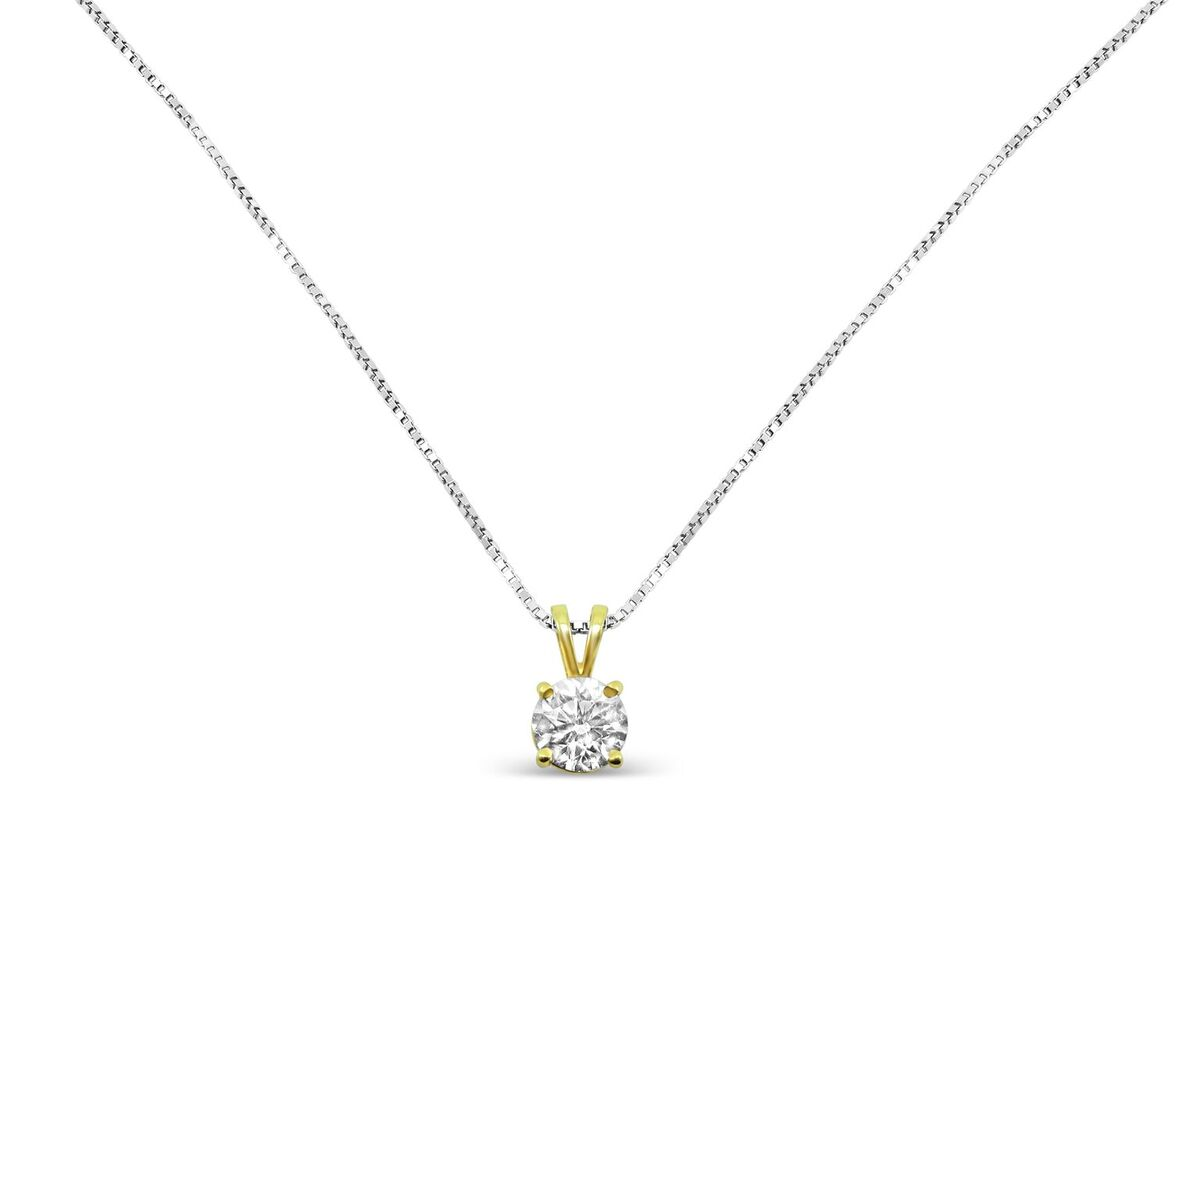 14k Yellow Gold Diamond Pendant With 14k White Gold Necklace